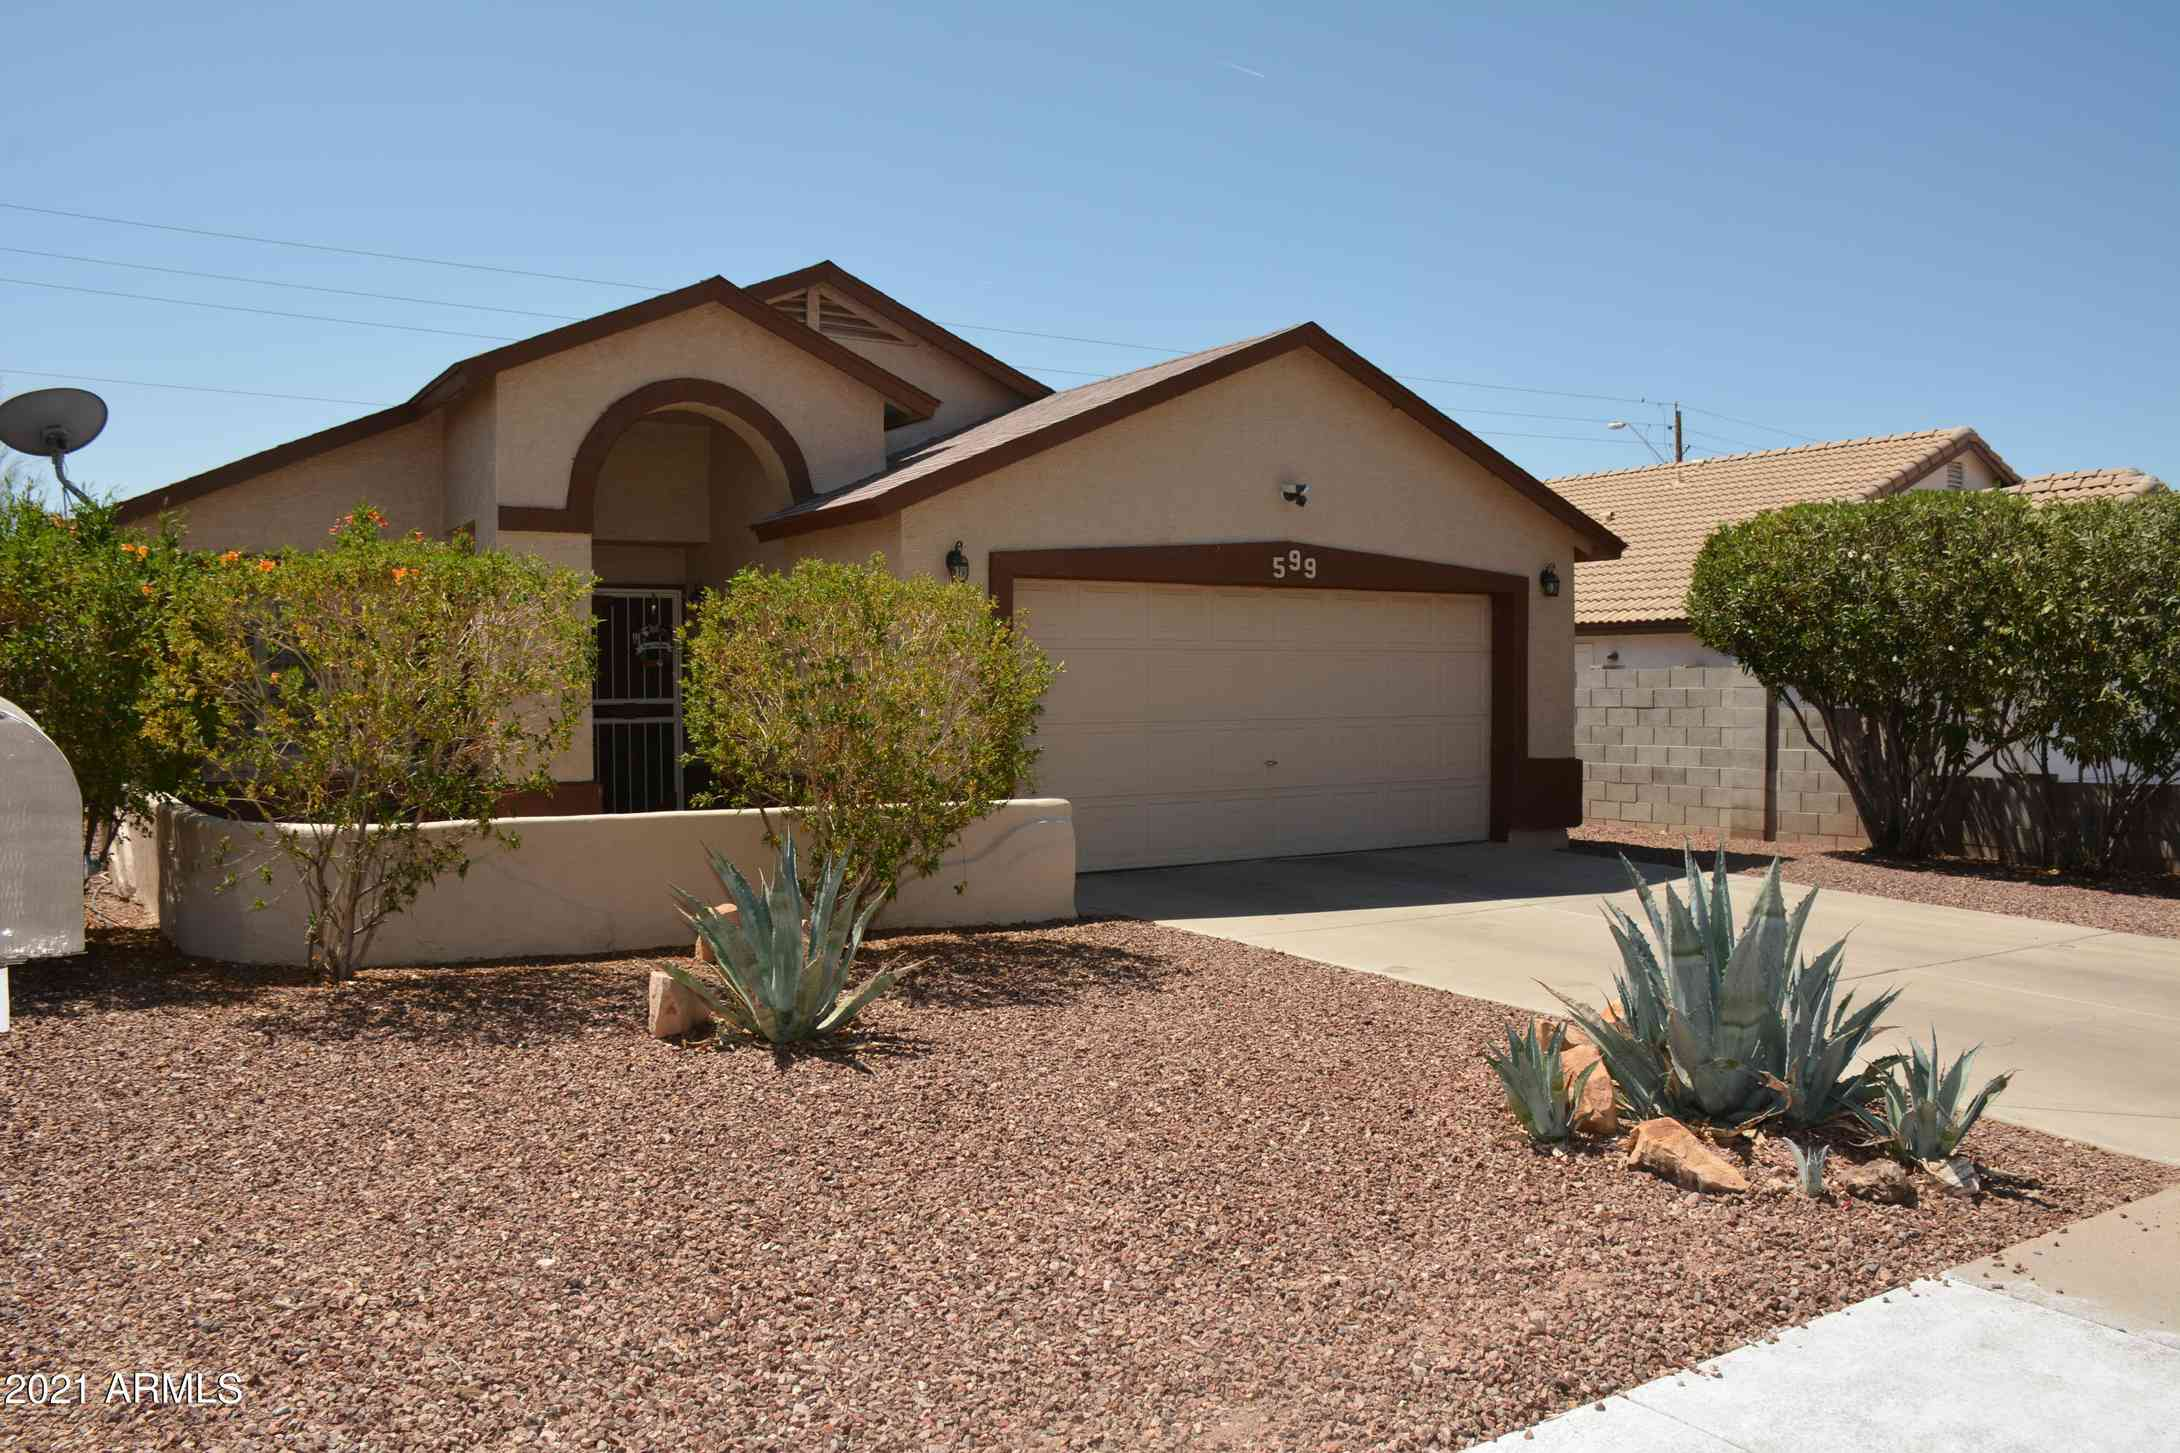 599 W SIERRA VISTA Drive, Apache Junction, AZ, 85120,